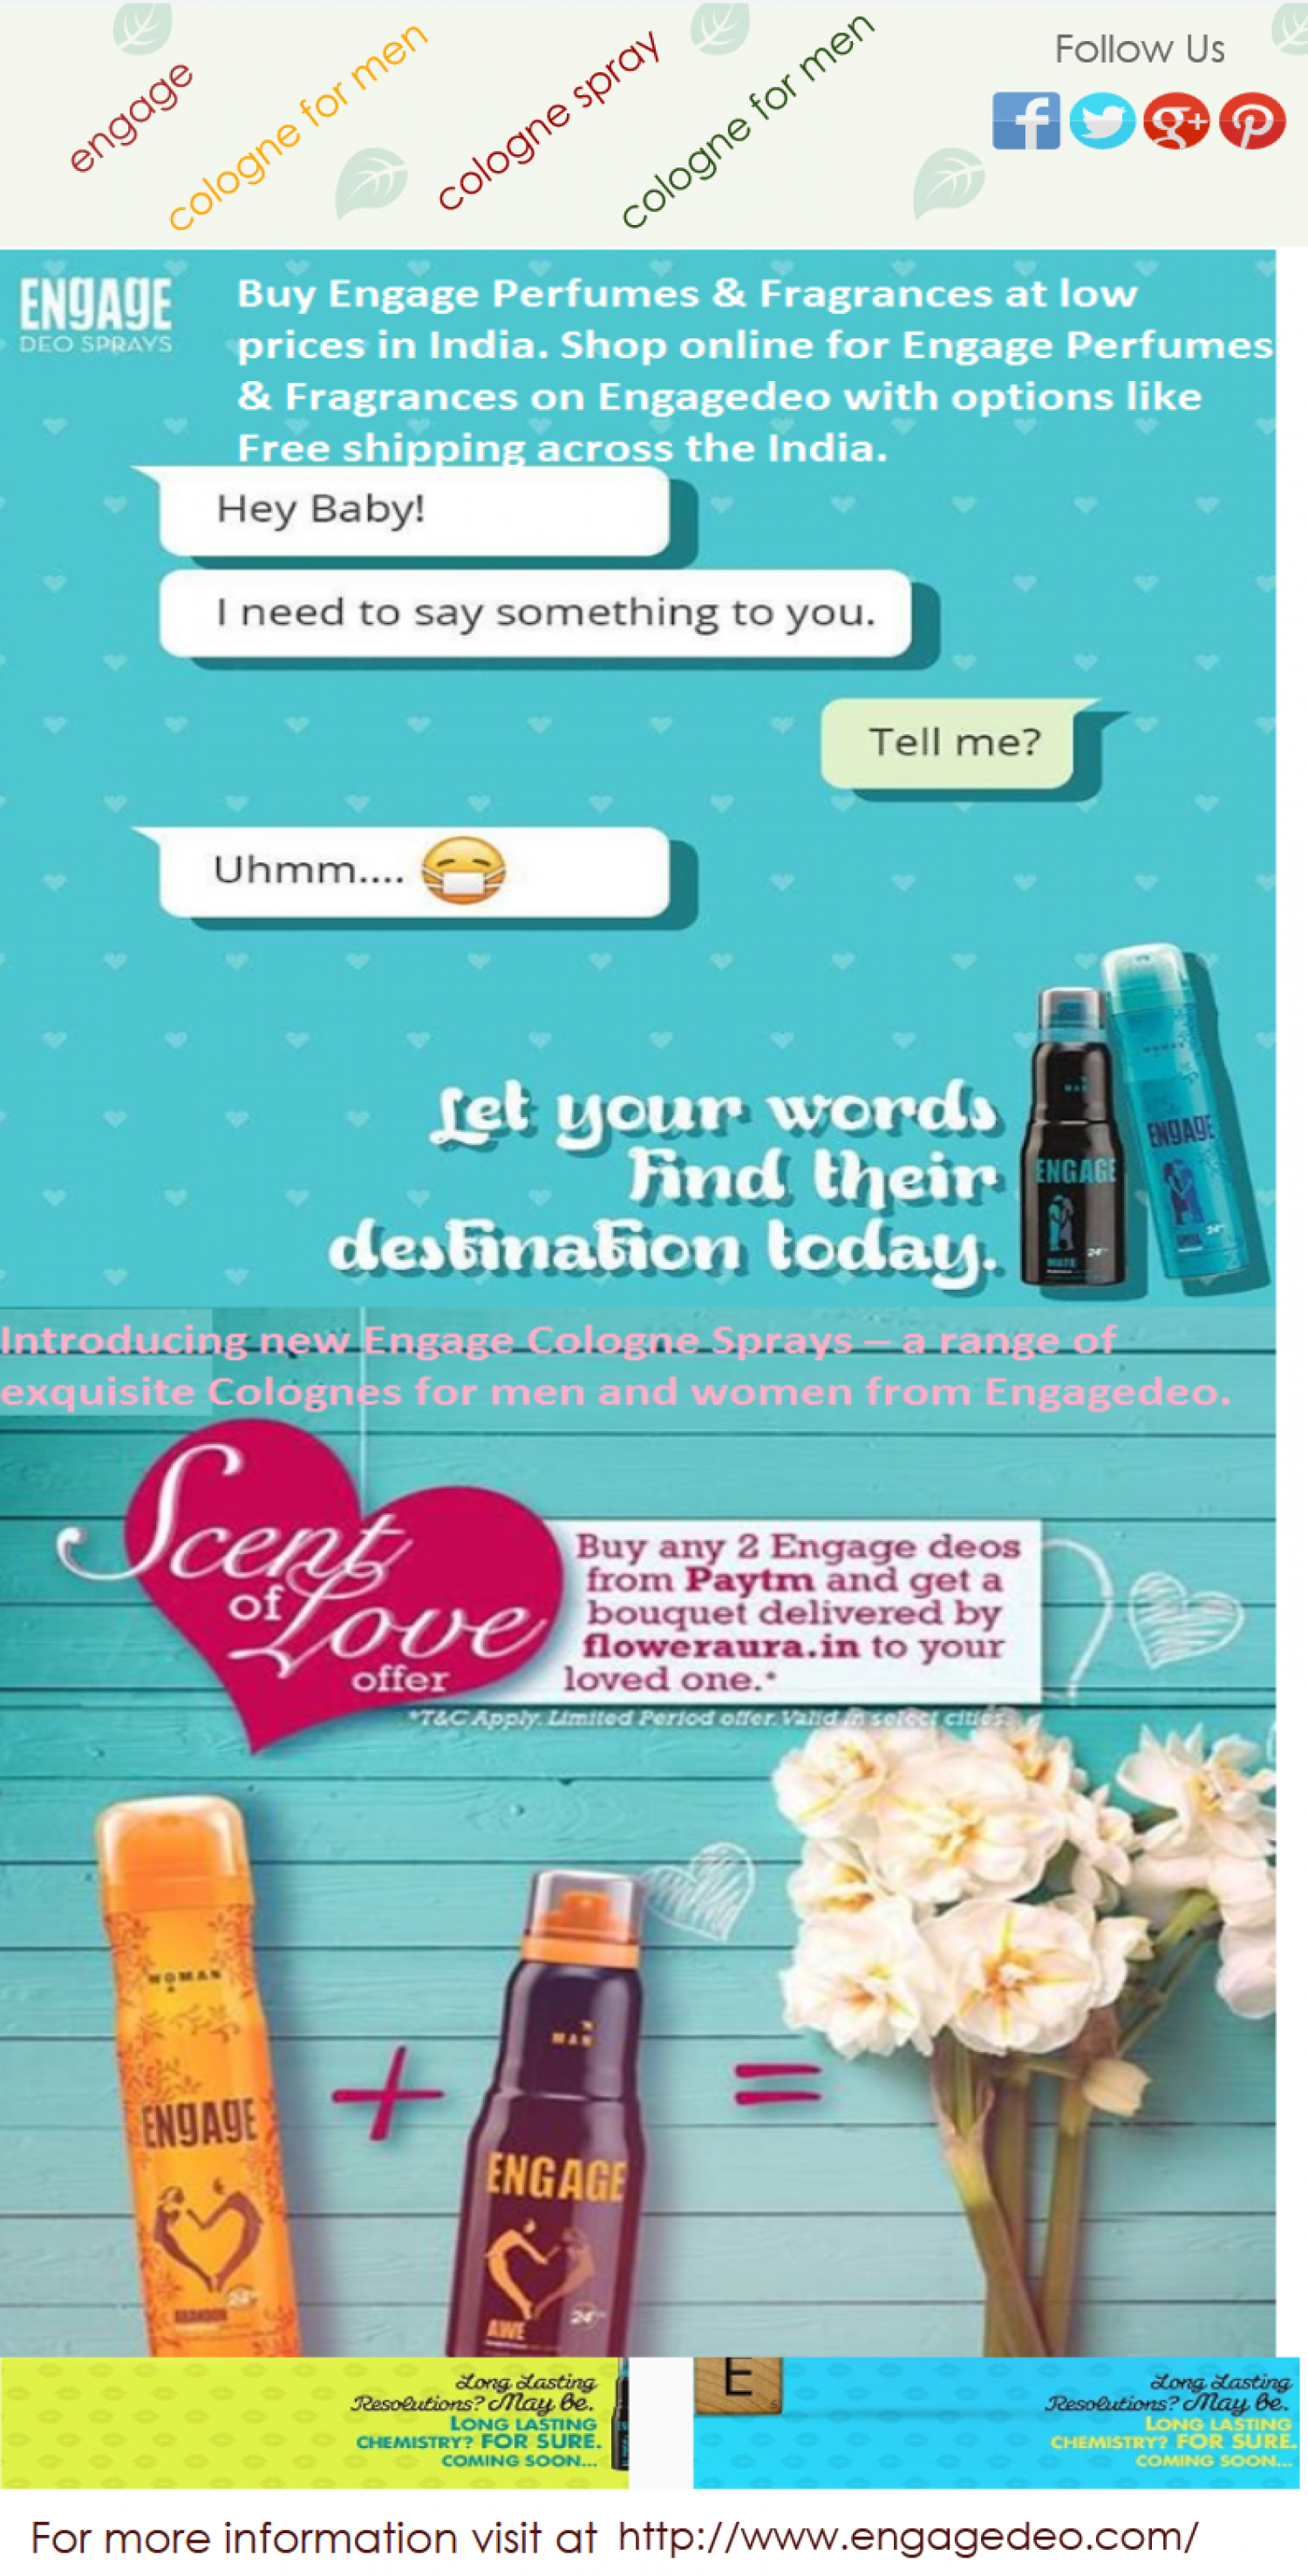 Engage Deo - Engage Perfumes & Fragrances Infographic